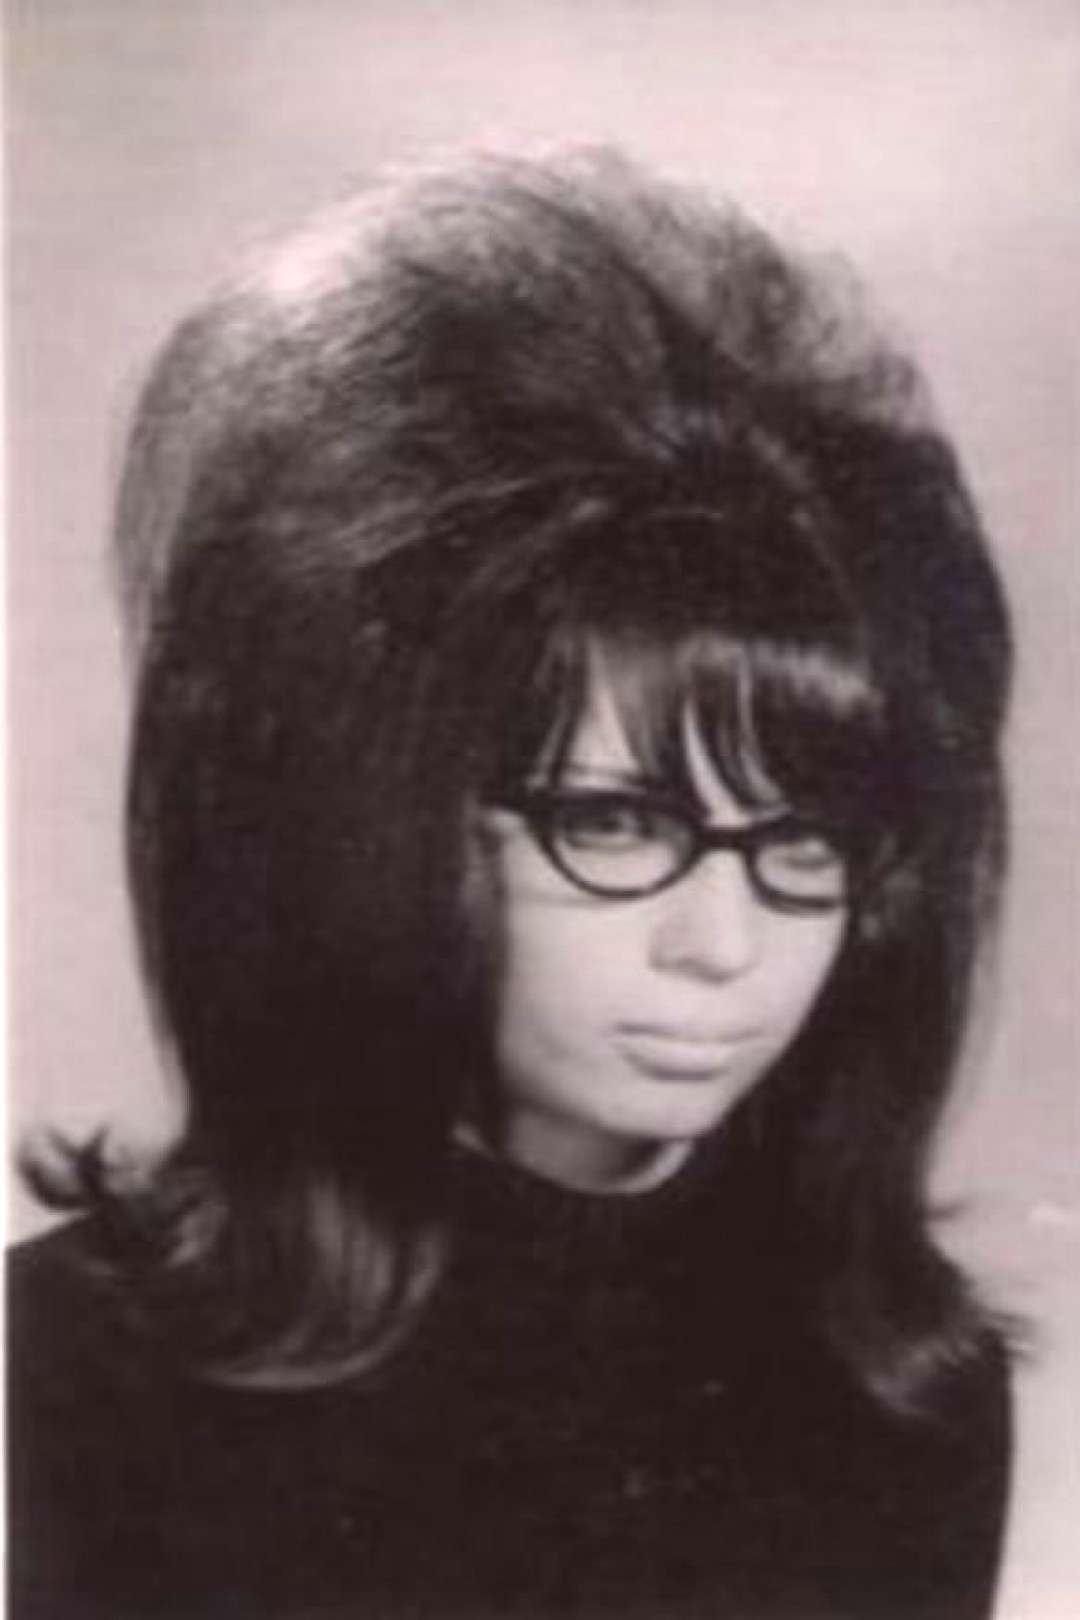 Hair today, hopefully gone tomorrow... the wackiest retro hairstyles in pictures